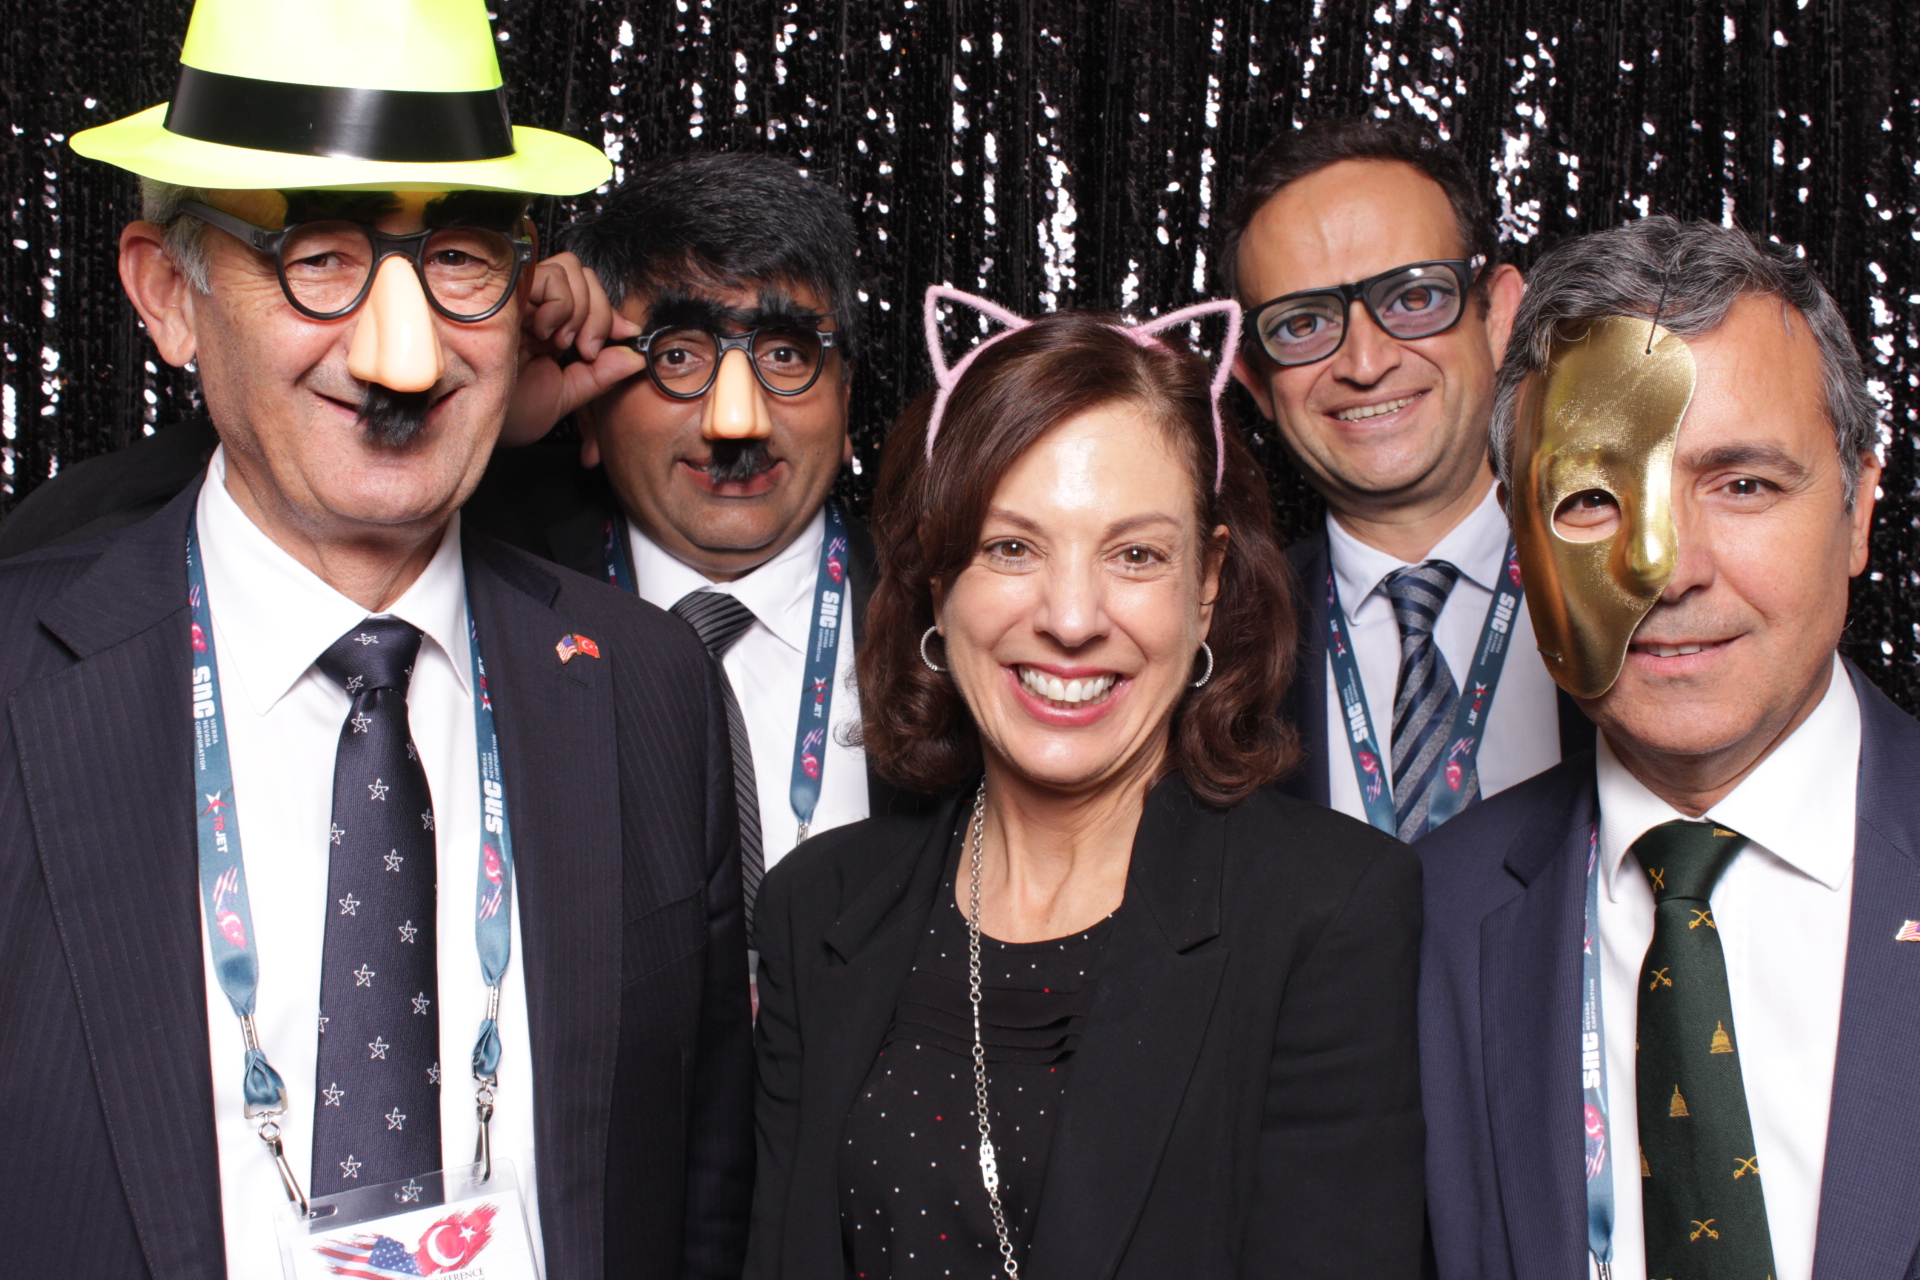 AMERICAN TURKISH COUNCIL ANNUAL CONFERENCE | HOT PINK PHOTO BOOTH